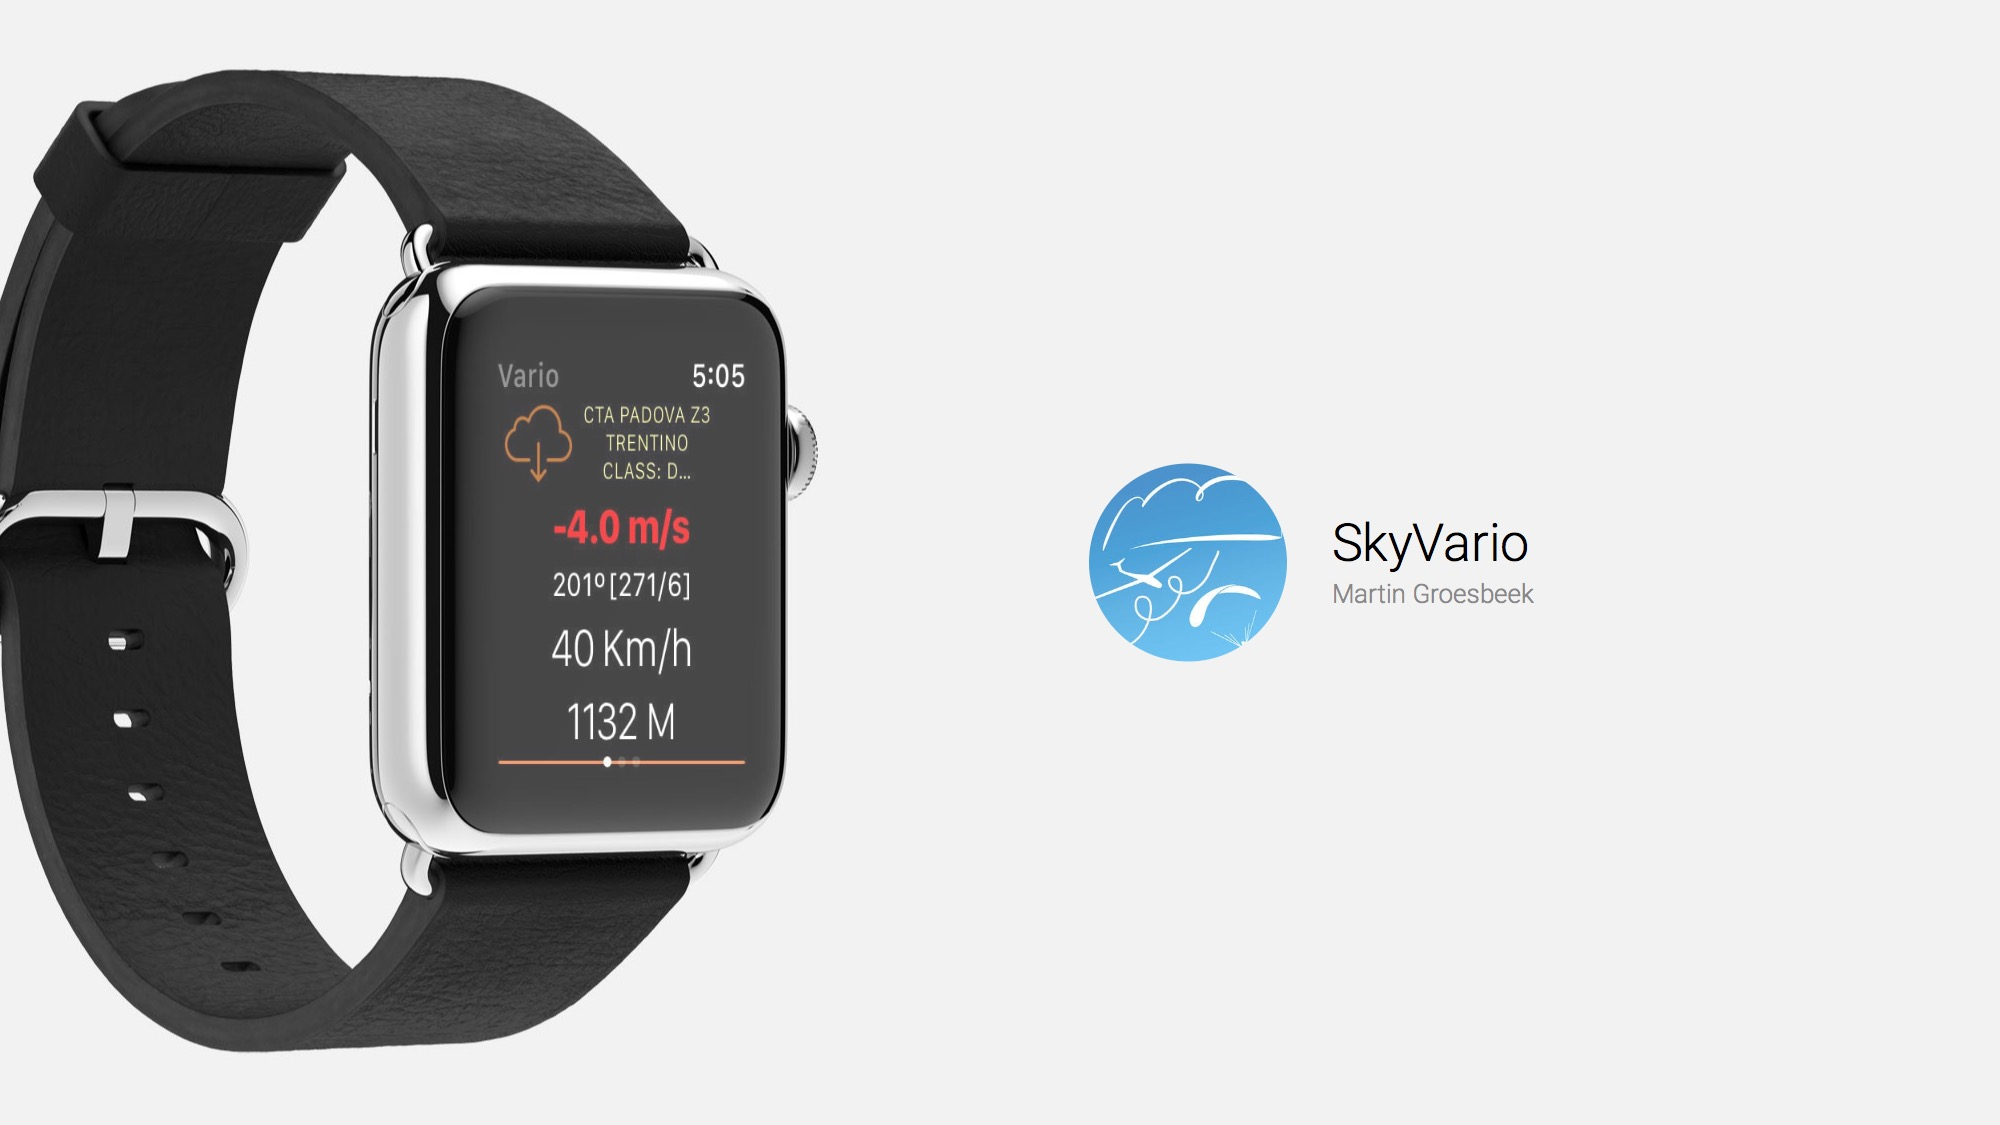 Have a Variometer on Apple Watch with skyVario